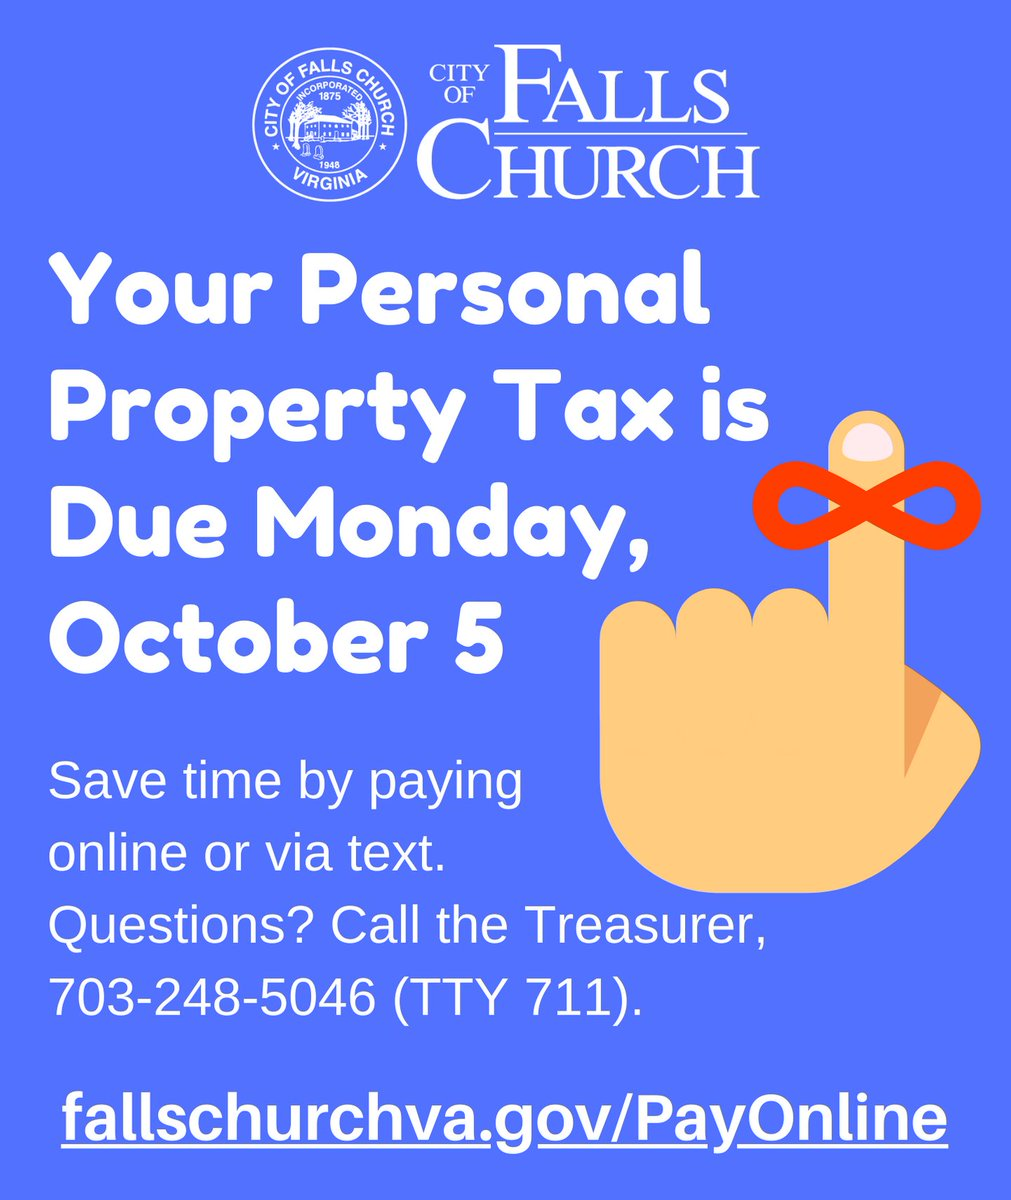 Reminder! Personal Property Tax is due Monday, October 5! Skip a trip to City Hall. The safest and easiest way to pay is online: